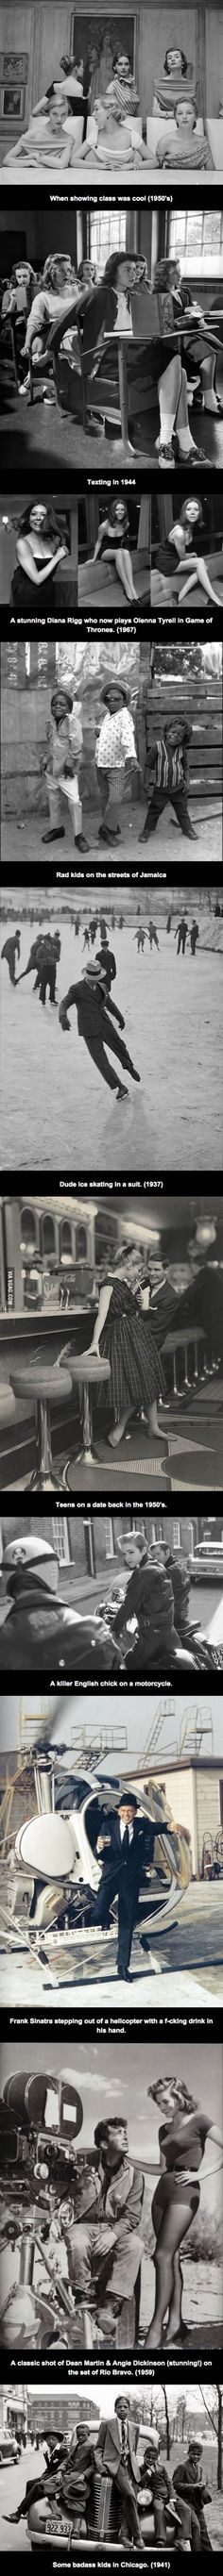 1950s: when classy was cool